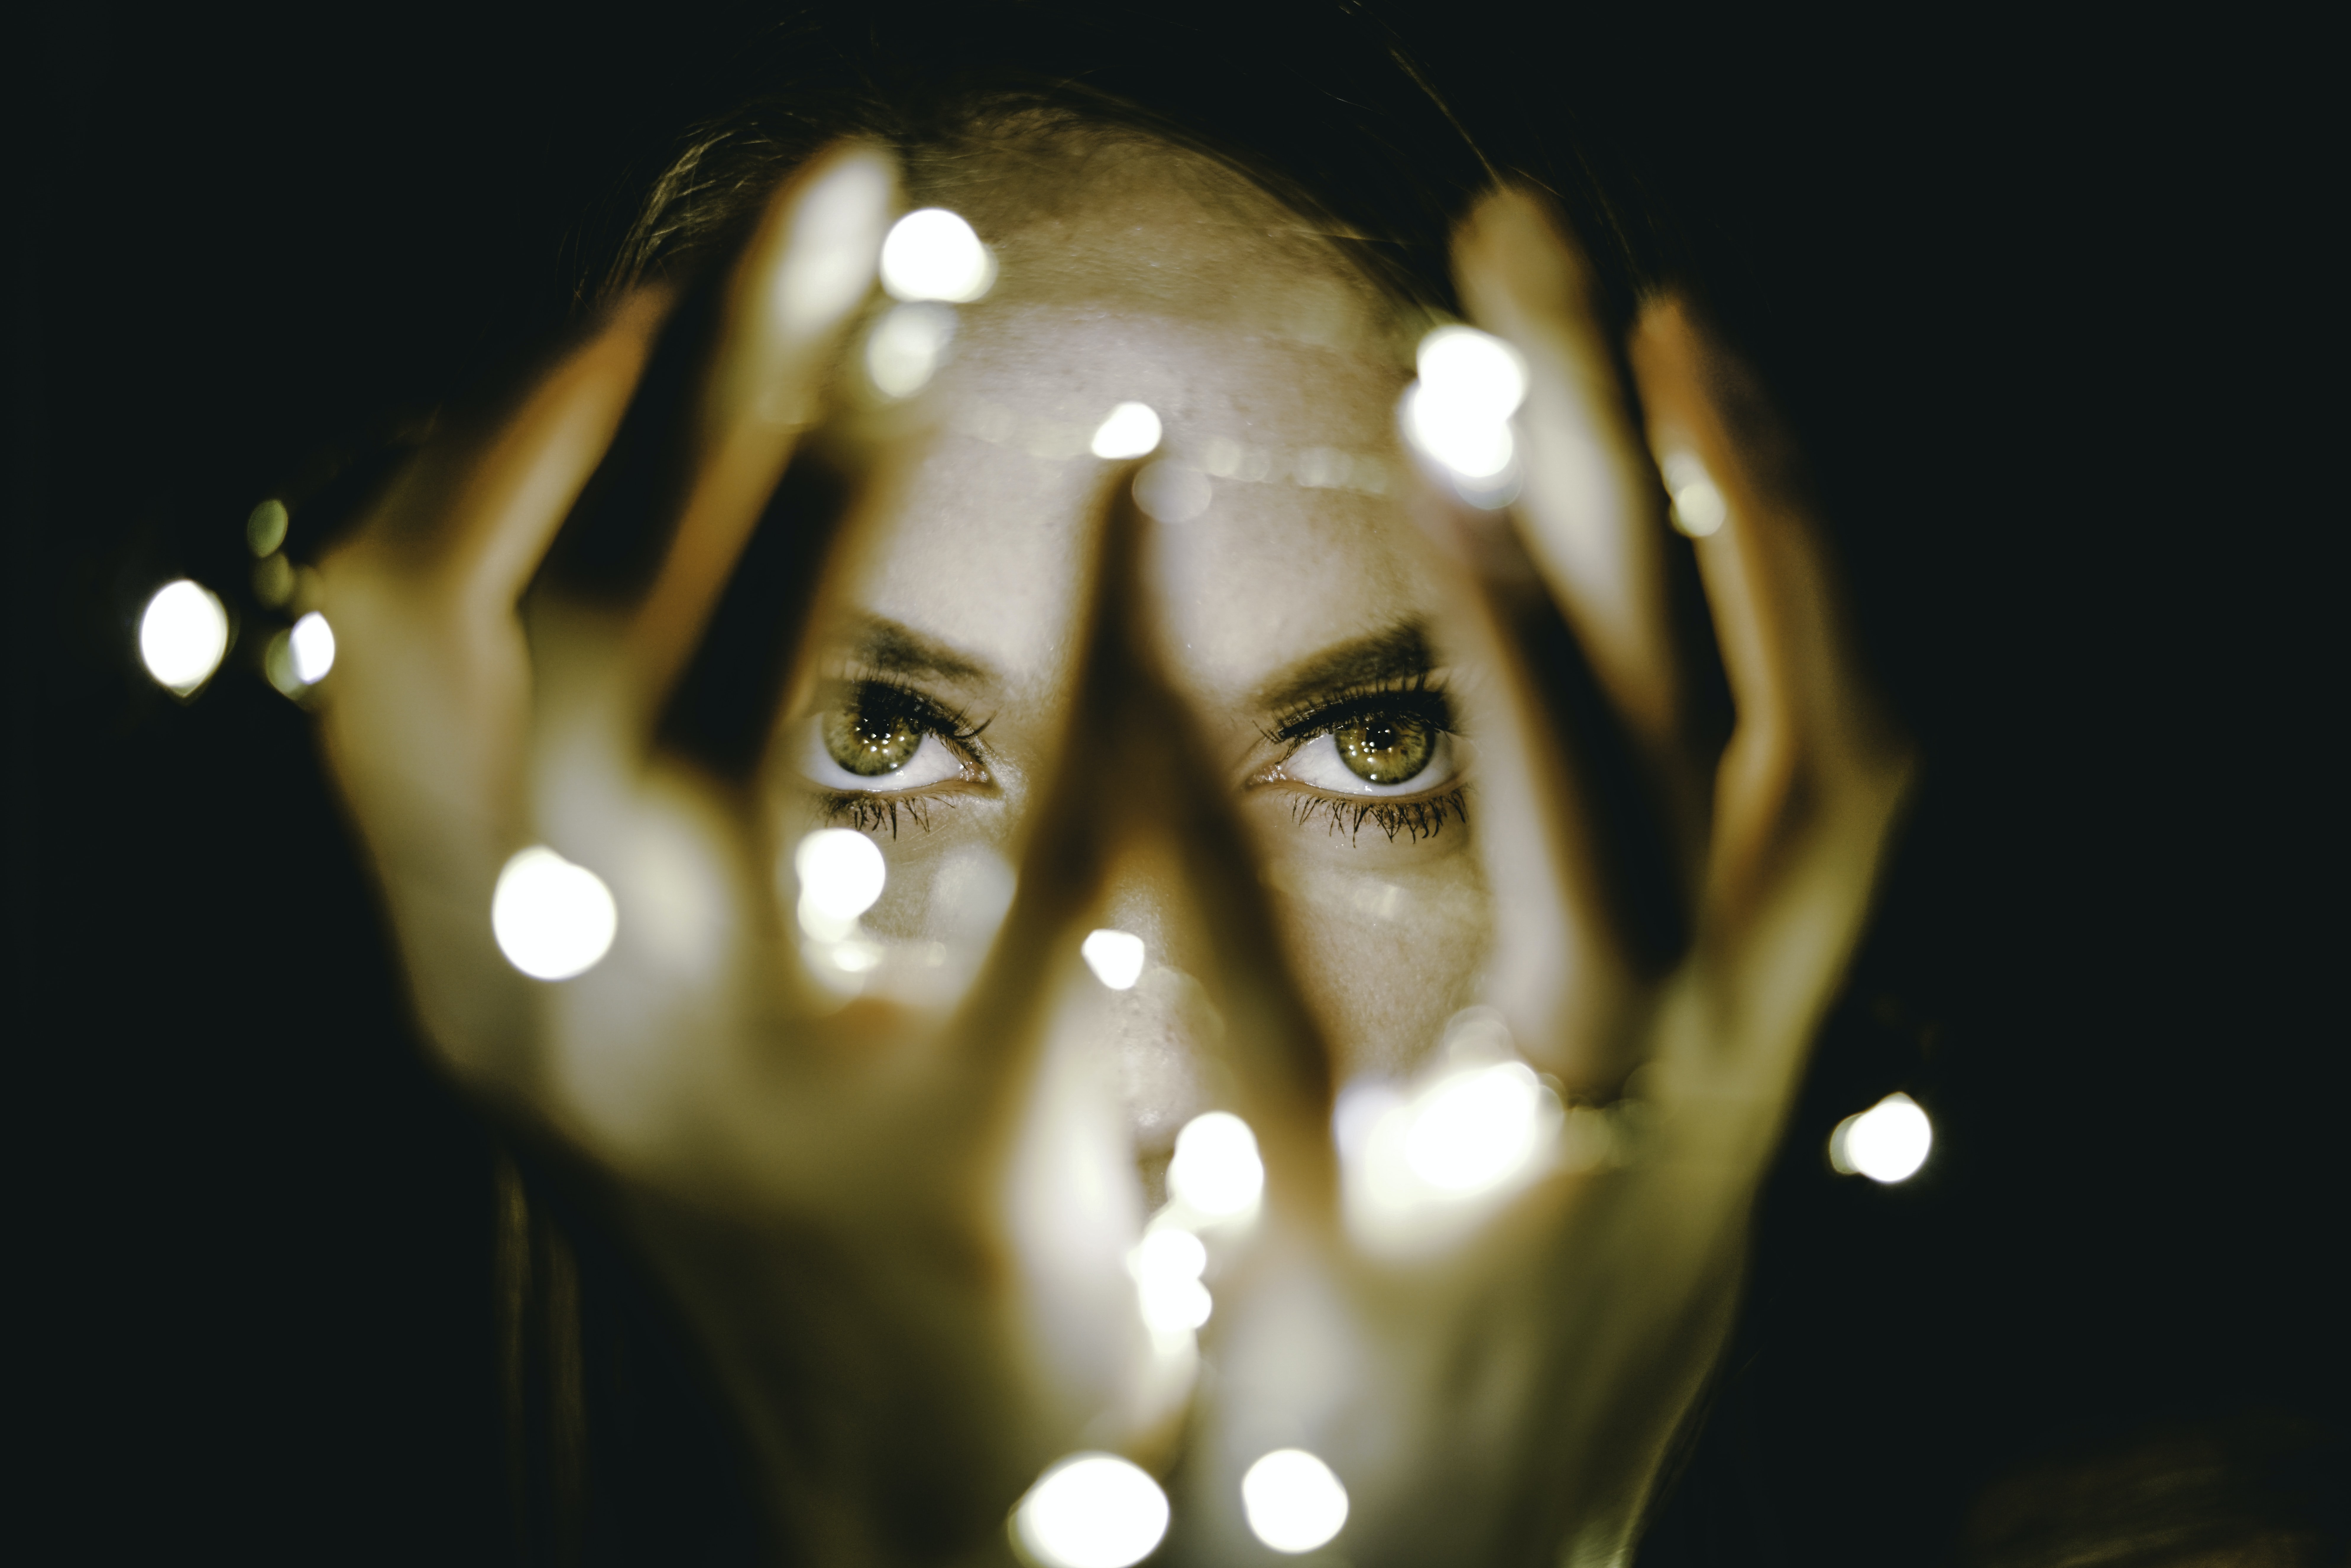 A close-up of woman's eyes through her hands surrounded by fairy lights.